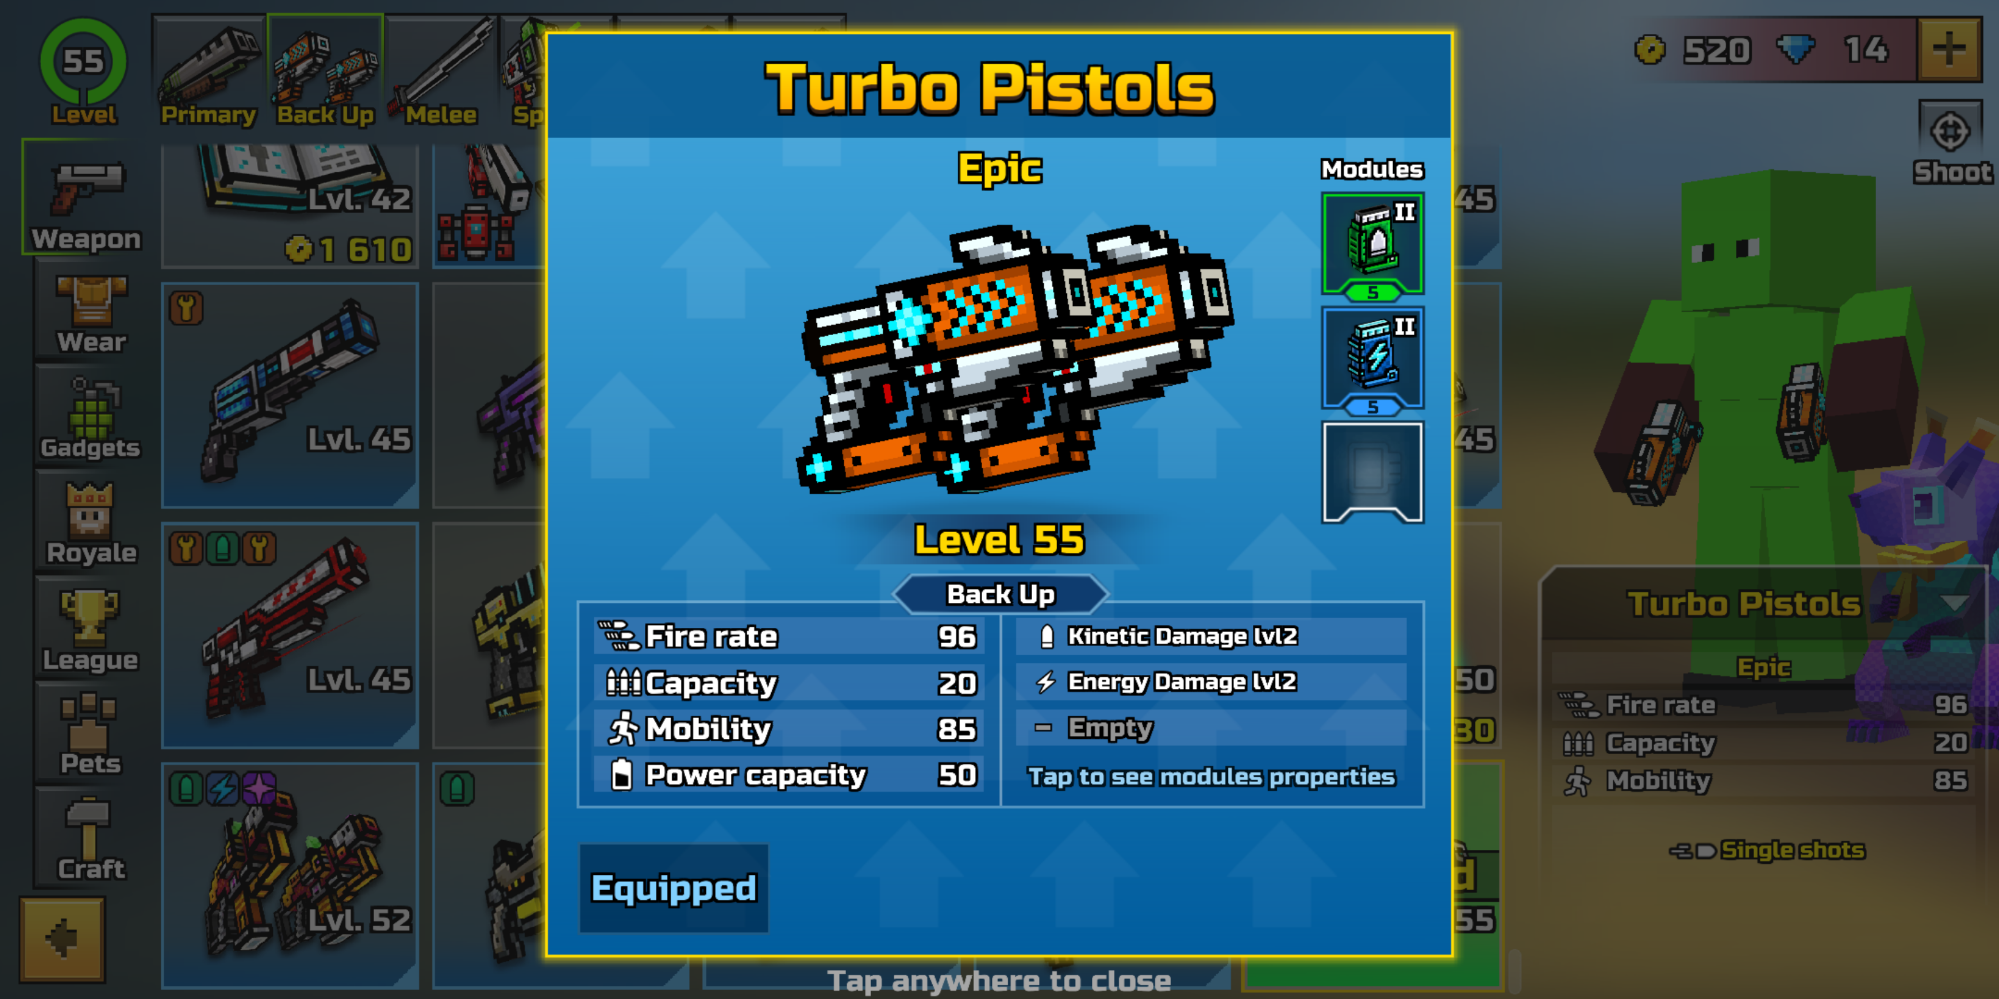 Oddest weapon ever?